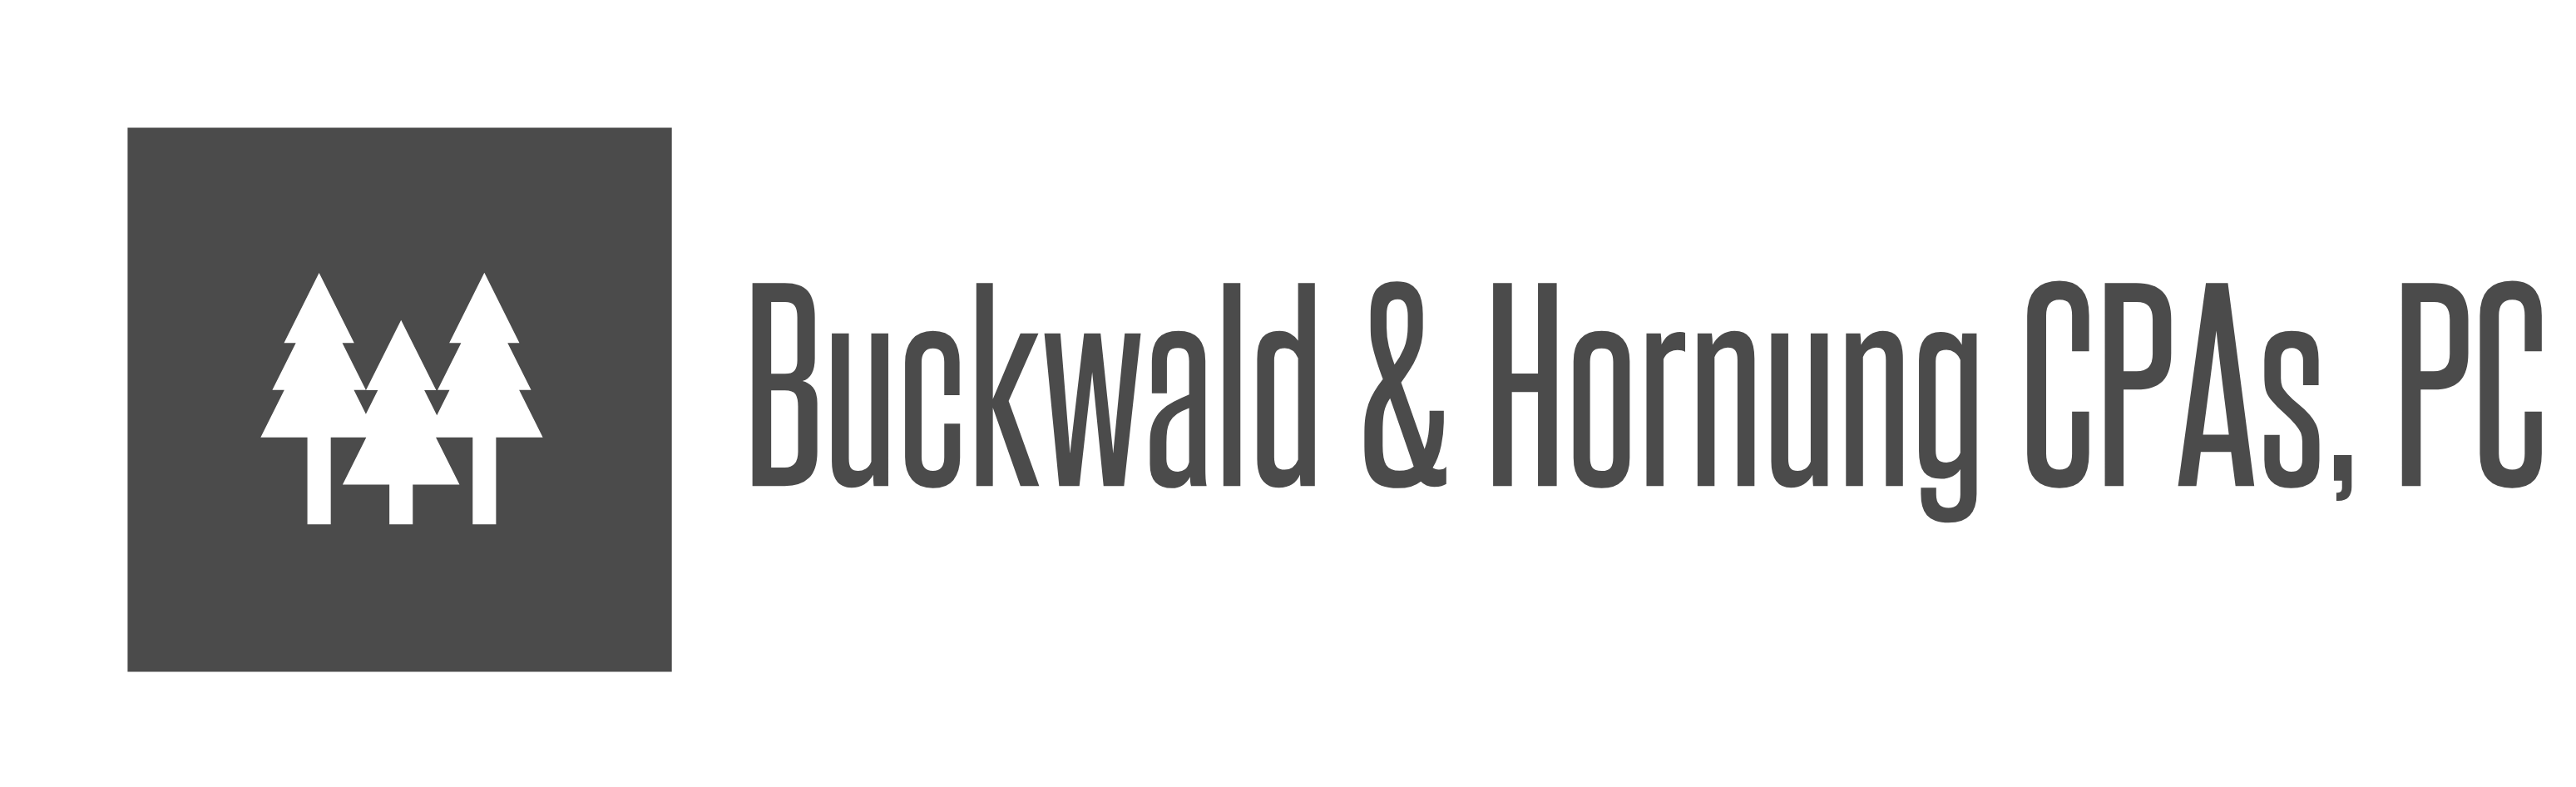 Buckwald & Hornung CPAs, PC